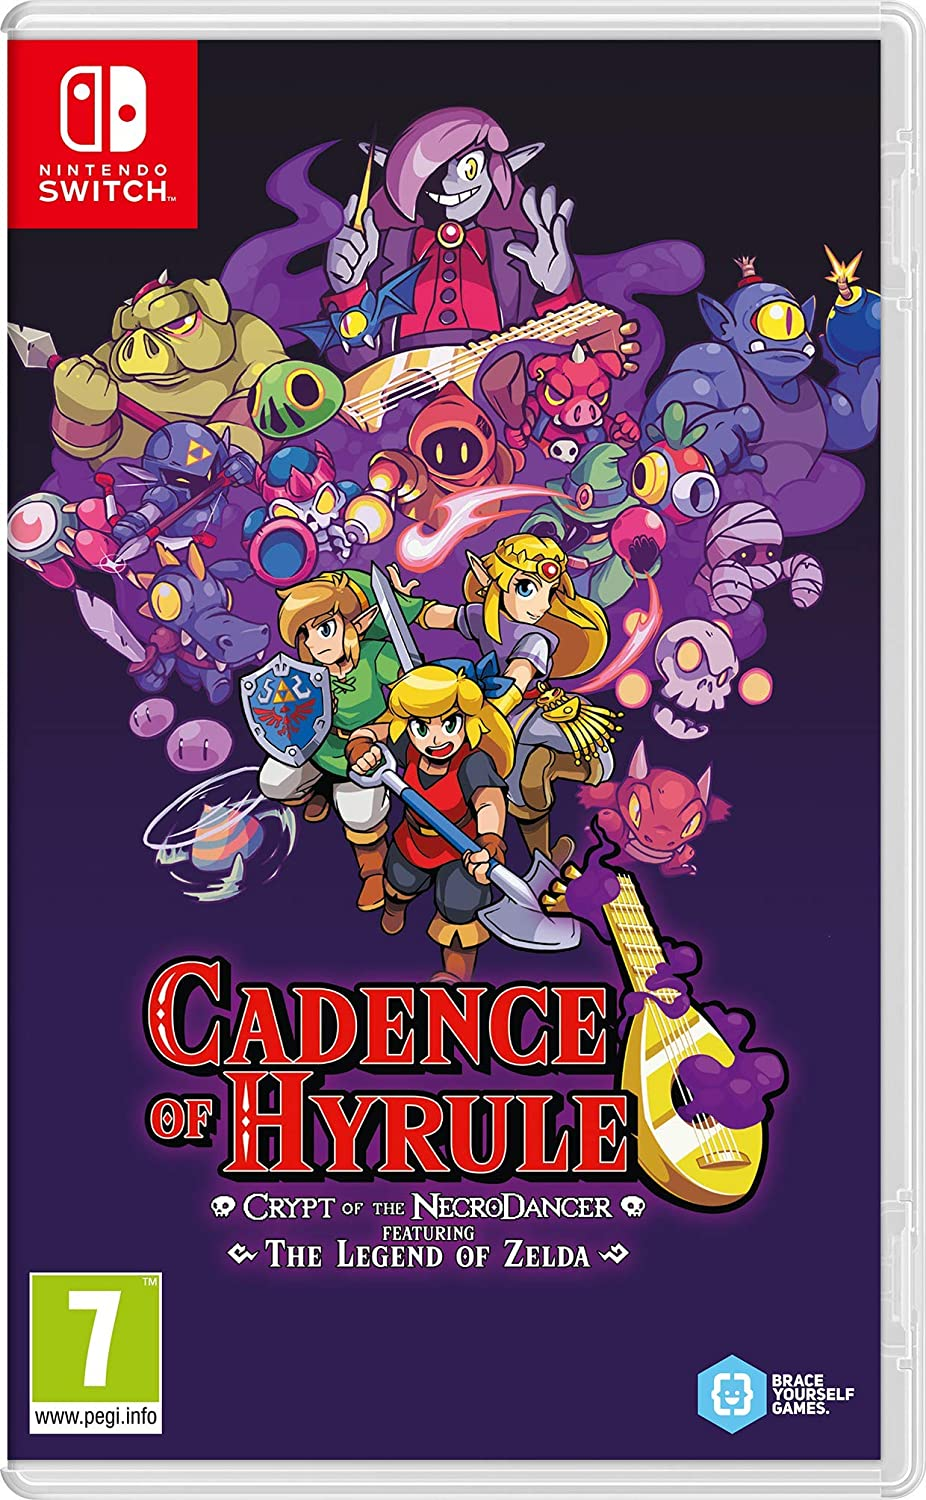 NINTENDO Juego Switch Cadence of Hyrule: Crypt of Necrodancer Feat The Legend of Zelda